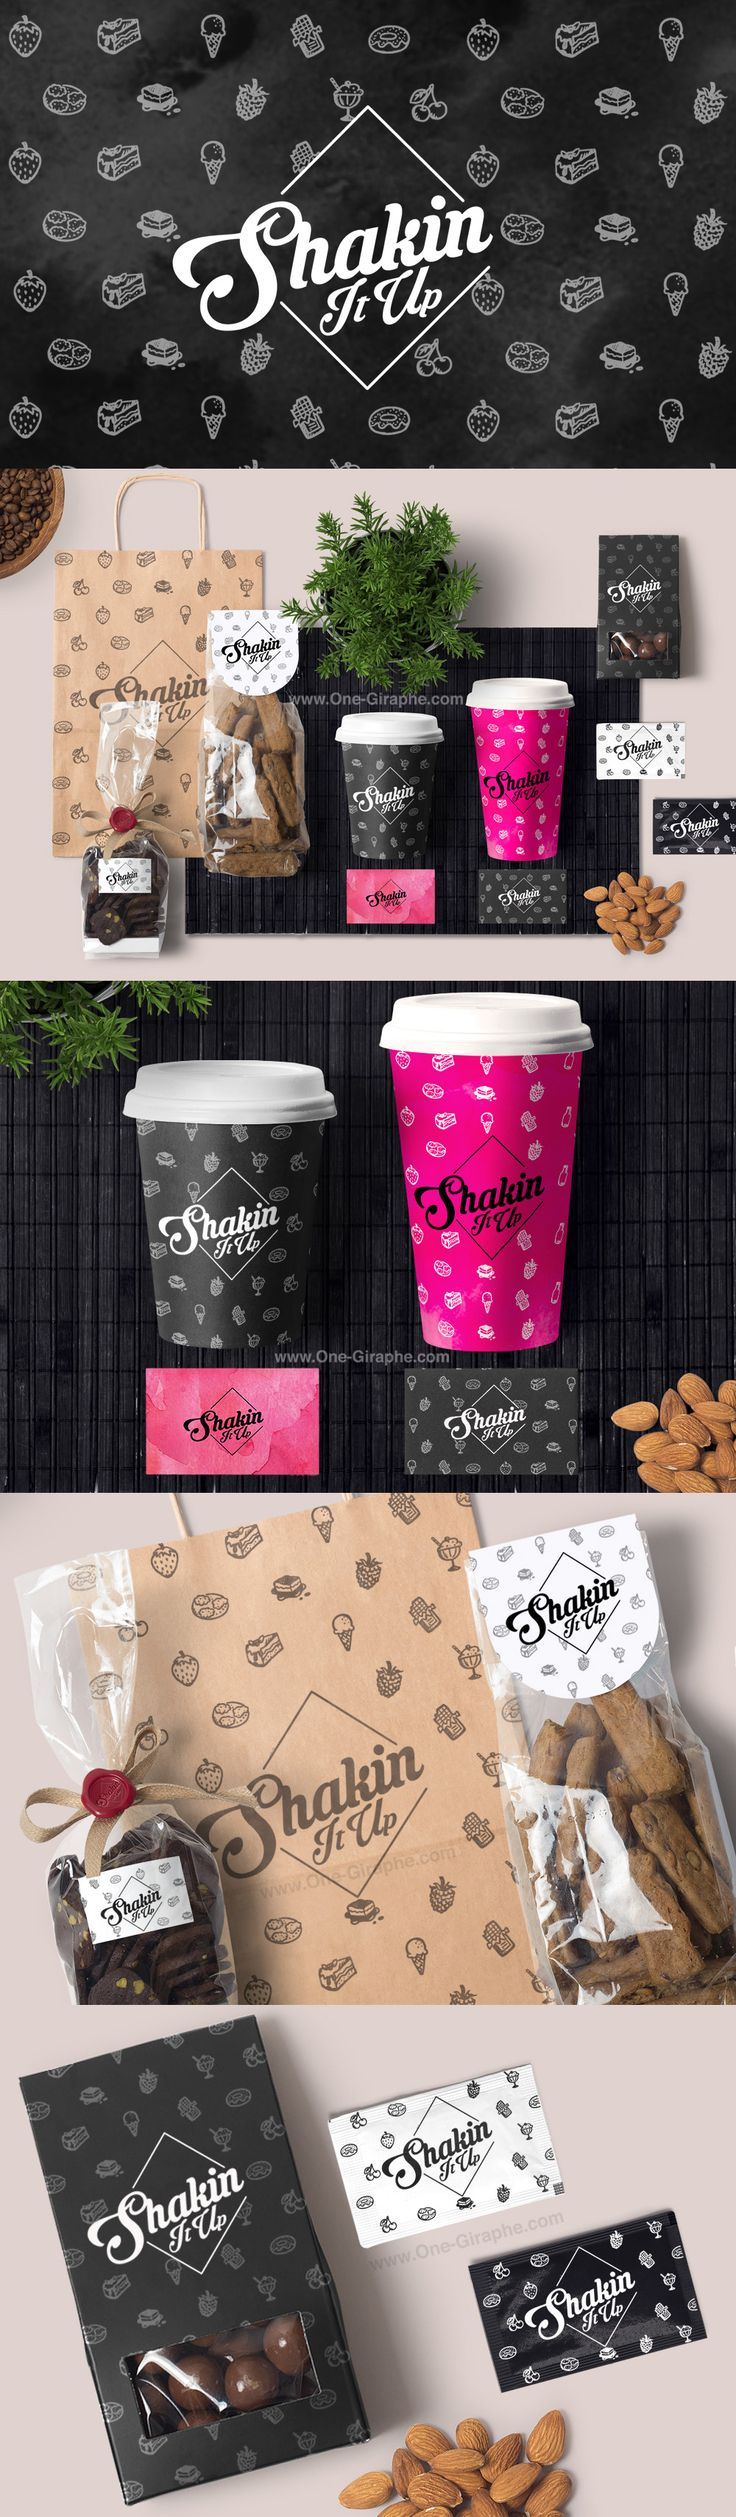 New Brand Identity - Portfolio: http://www.one-giraphe.com/prev.php?c=175  #brandidentity #logo #logodesign #food #watercolor #pattern #coffee #graphic #graphicdesign #bakery #artist #logodesigner #etsy